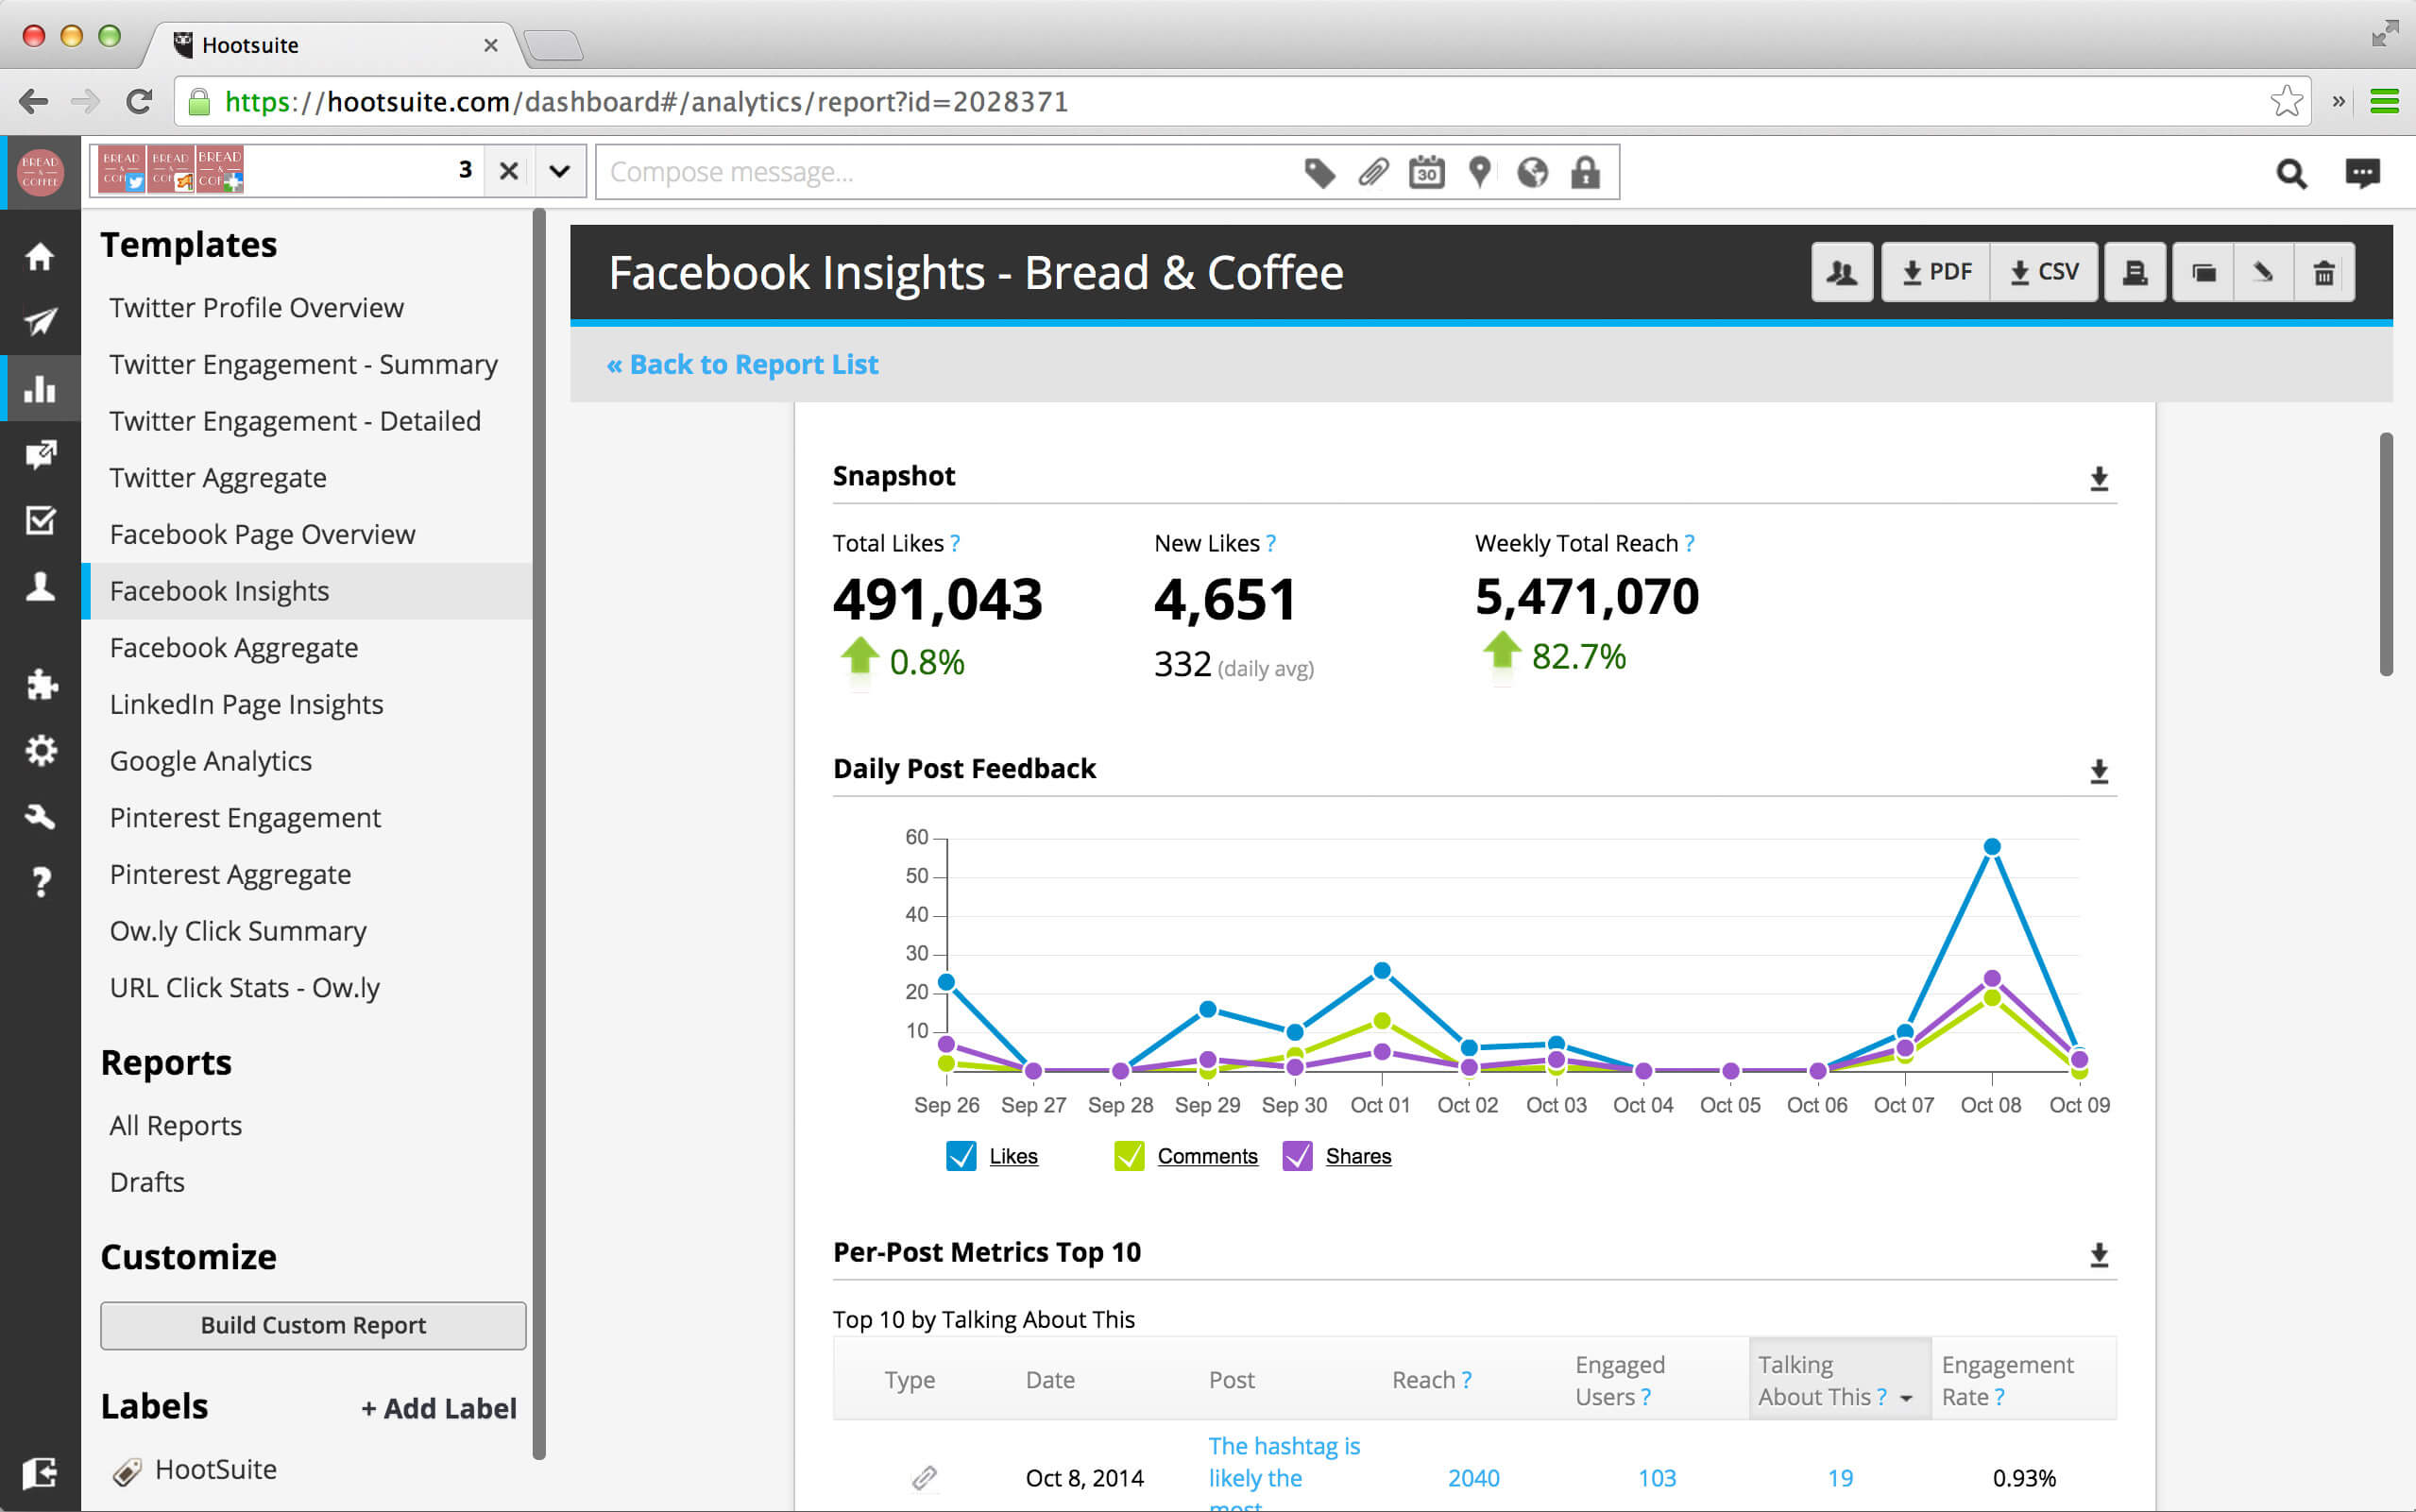 A screenshot of Hootsuite's analytics report